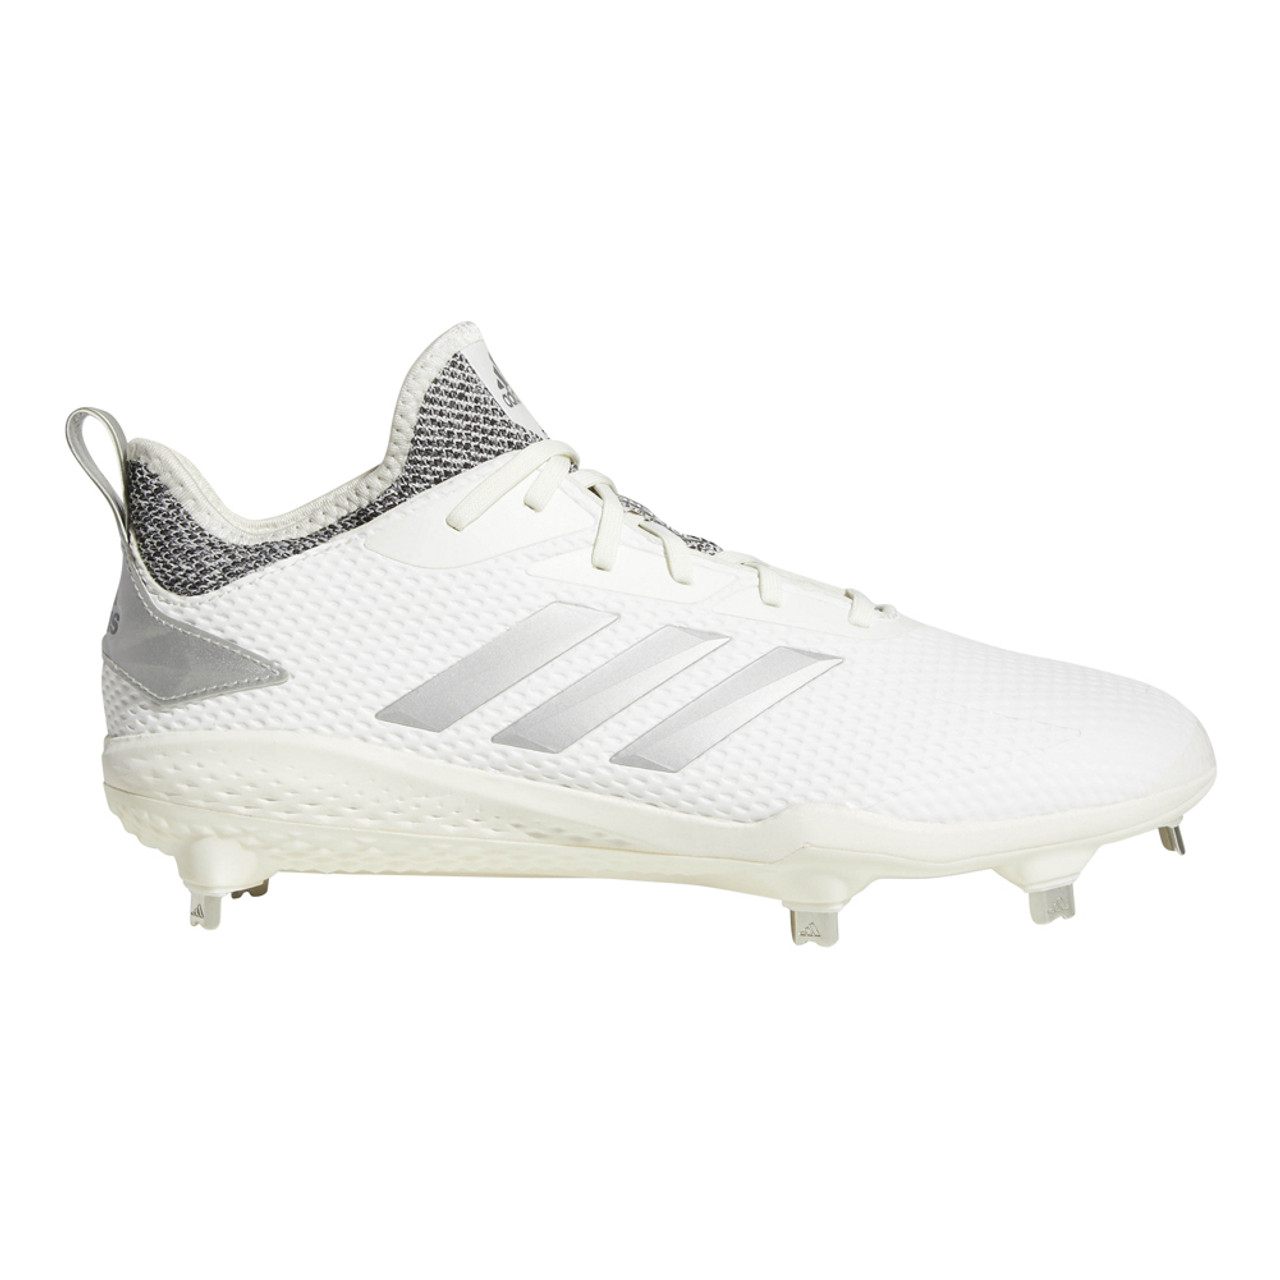 online retailer dcaae 4a6bf Adidas Mens Adizero Afterburner V Baseball Cleat WhiteGrey - Shop now   Shoolu.